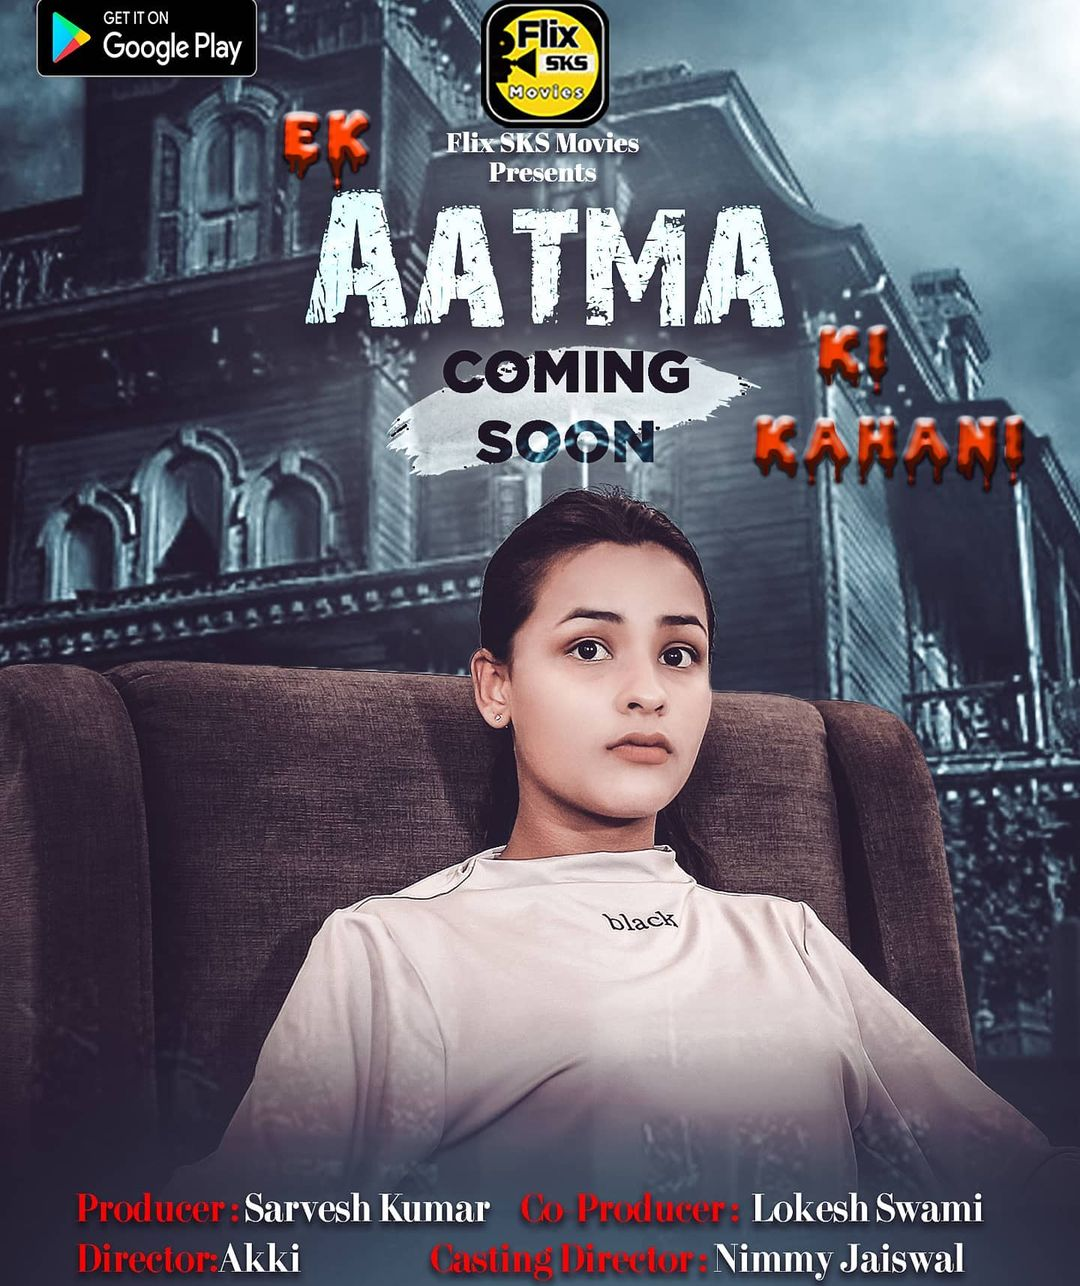 Ek Aatma Ki Kahani (2020) S01E01 FlixSKSMovies Original Hindi Web Series 720p HDRip 170MB Download